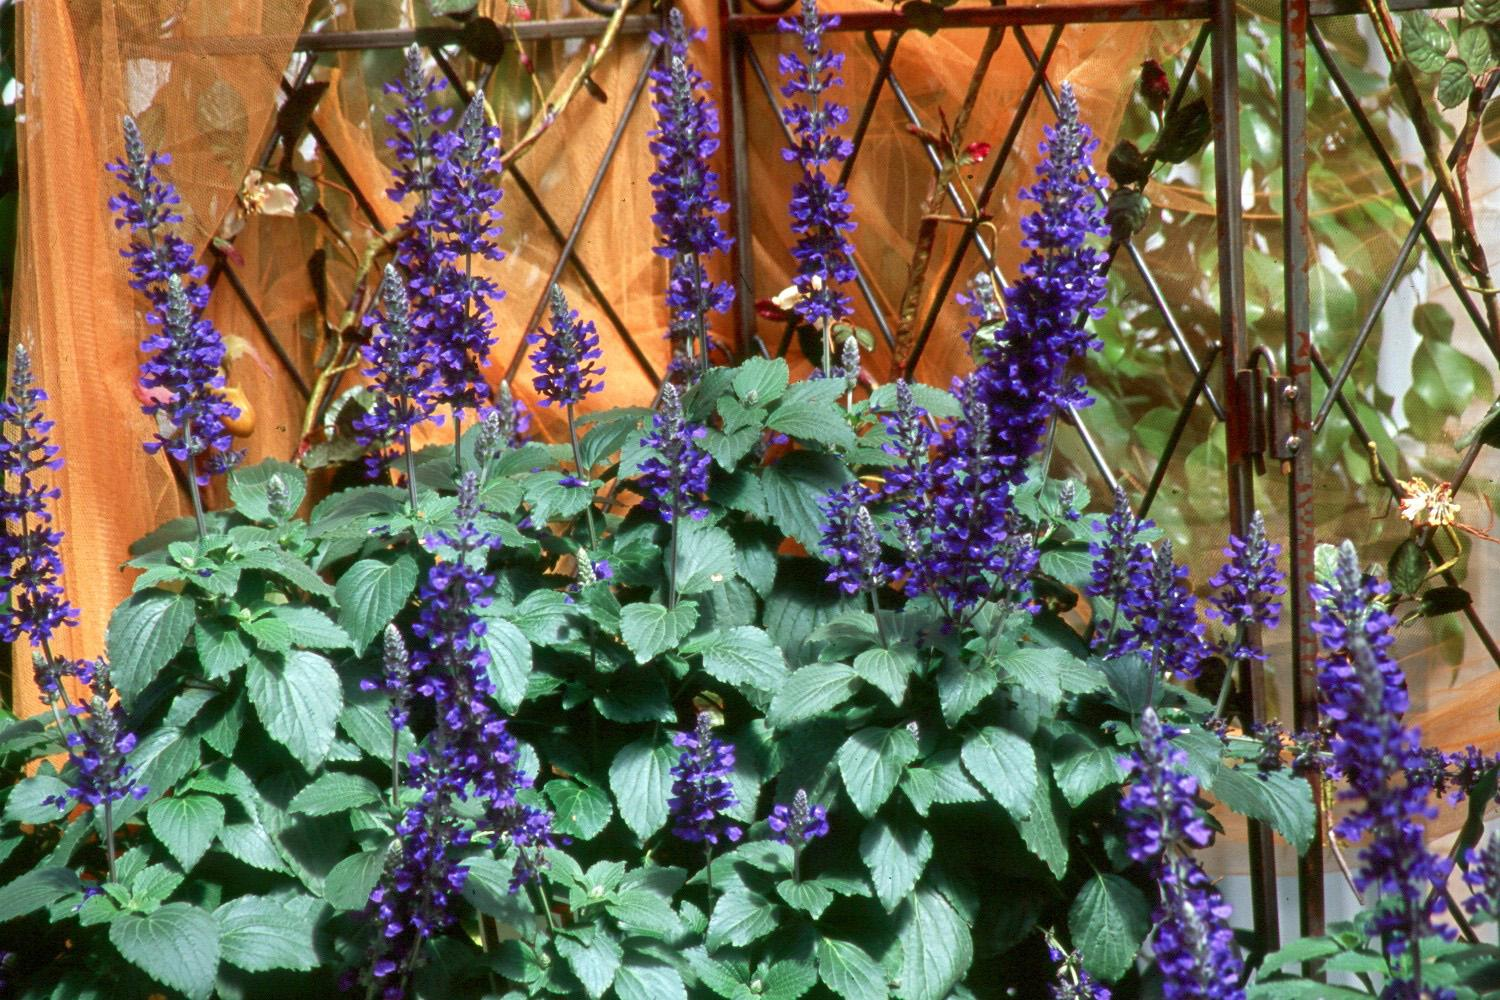 Mystic Spires Blue is the first dwarf or compact selection of the well-loved Indigo Spires. It will work well with perennials like purple coneflowers and summer phlox, or combined with yellows like melampodium, black-eyed Susans and New Gold lantana.